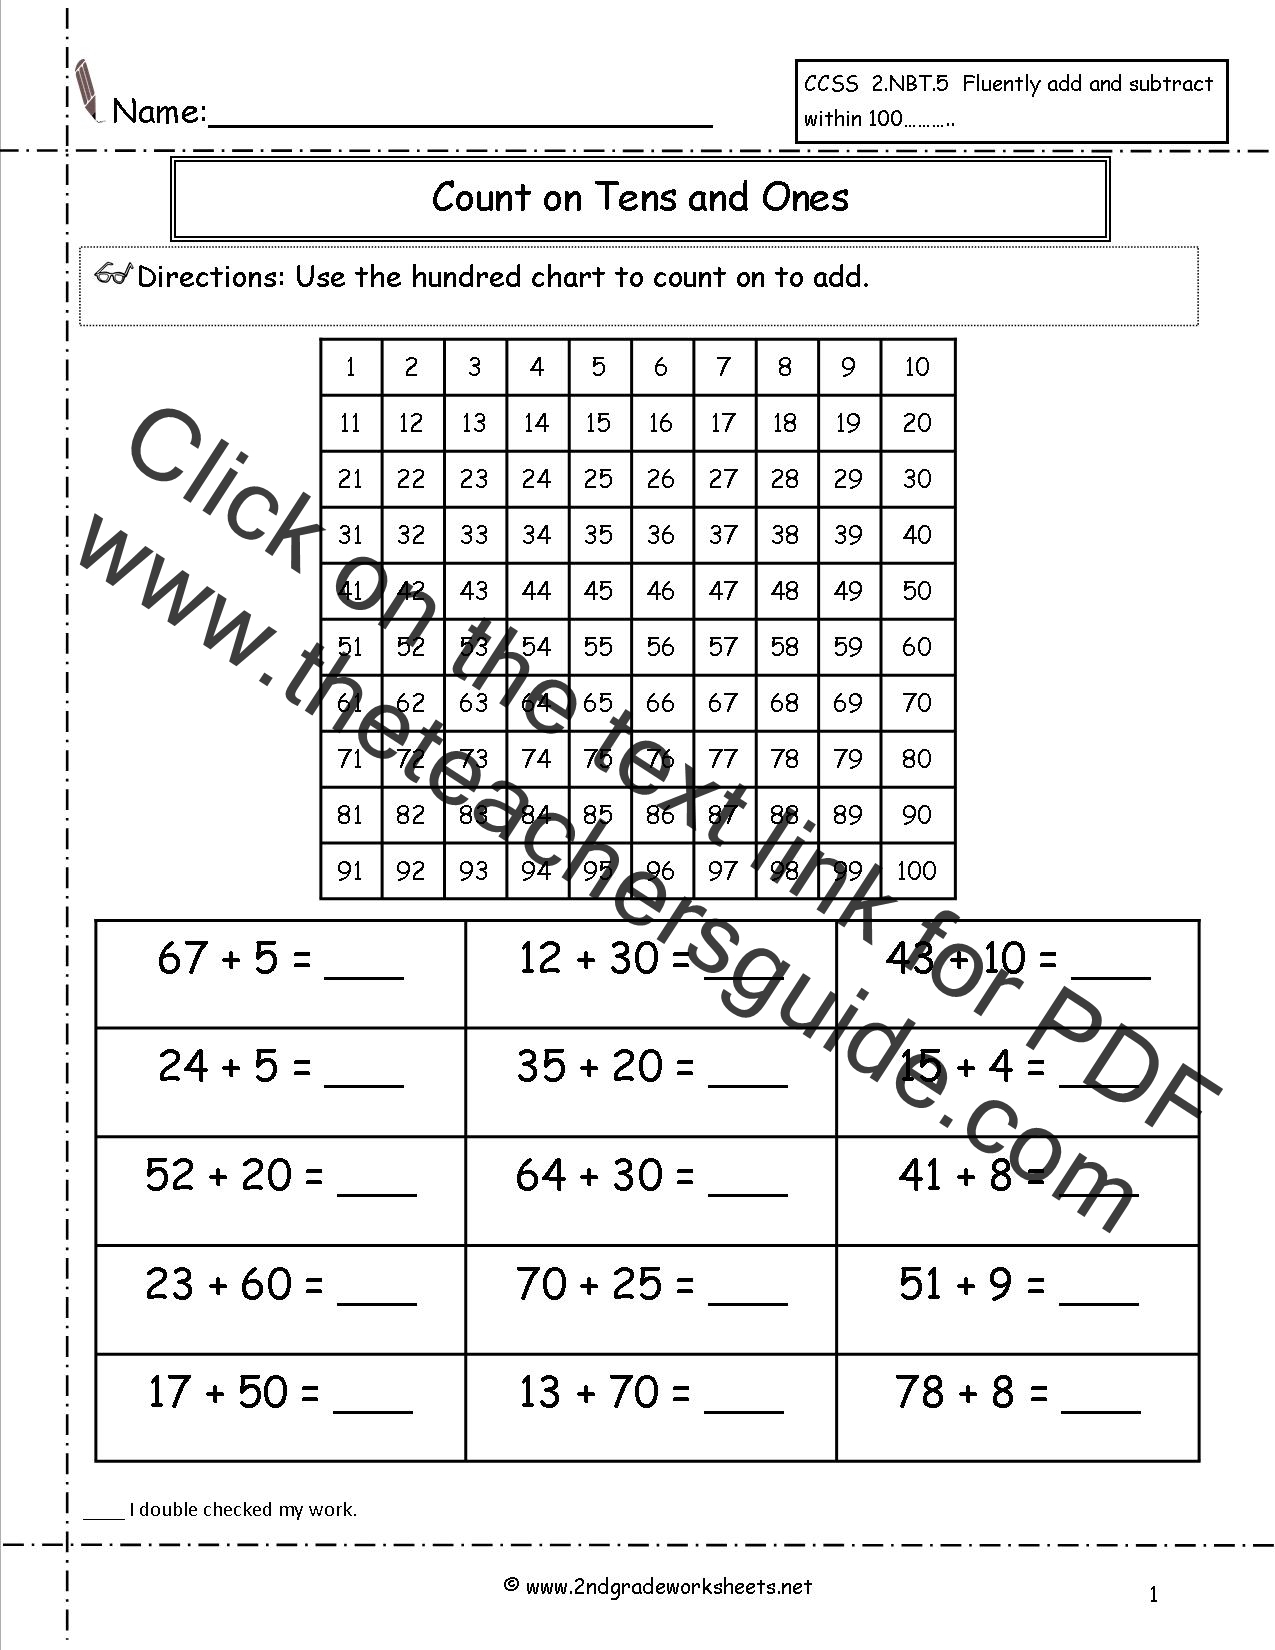 math worksheet : two digit addition worksheets : Two Digit Addition Without Regrouping Worksheet